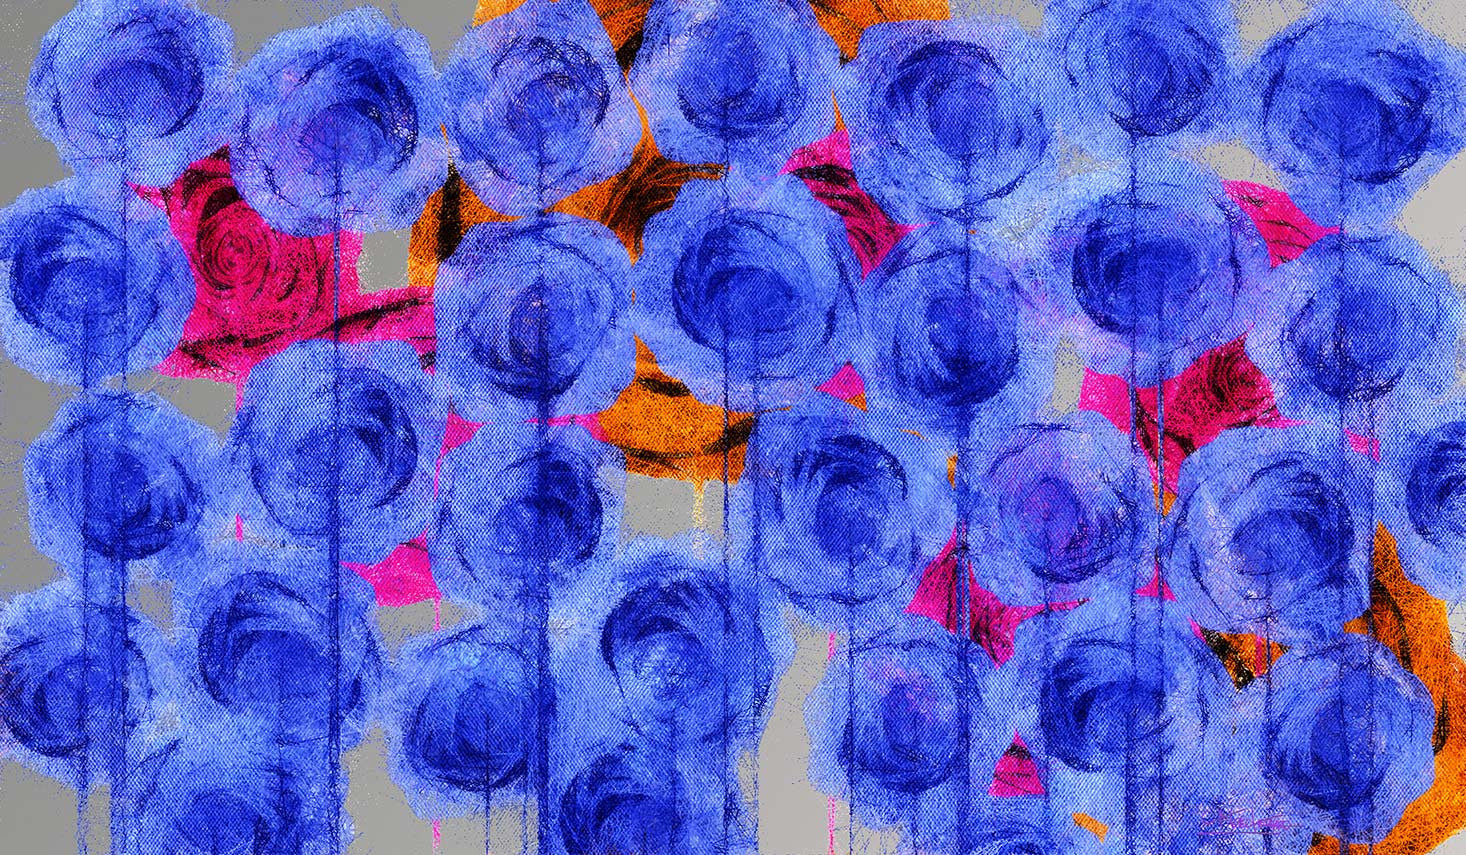 Weeping Roses / 54 x 32 x 2 / digital art on aluminum